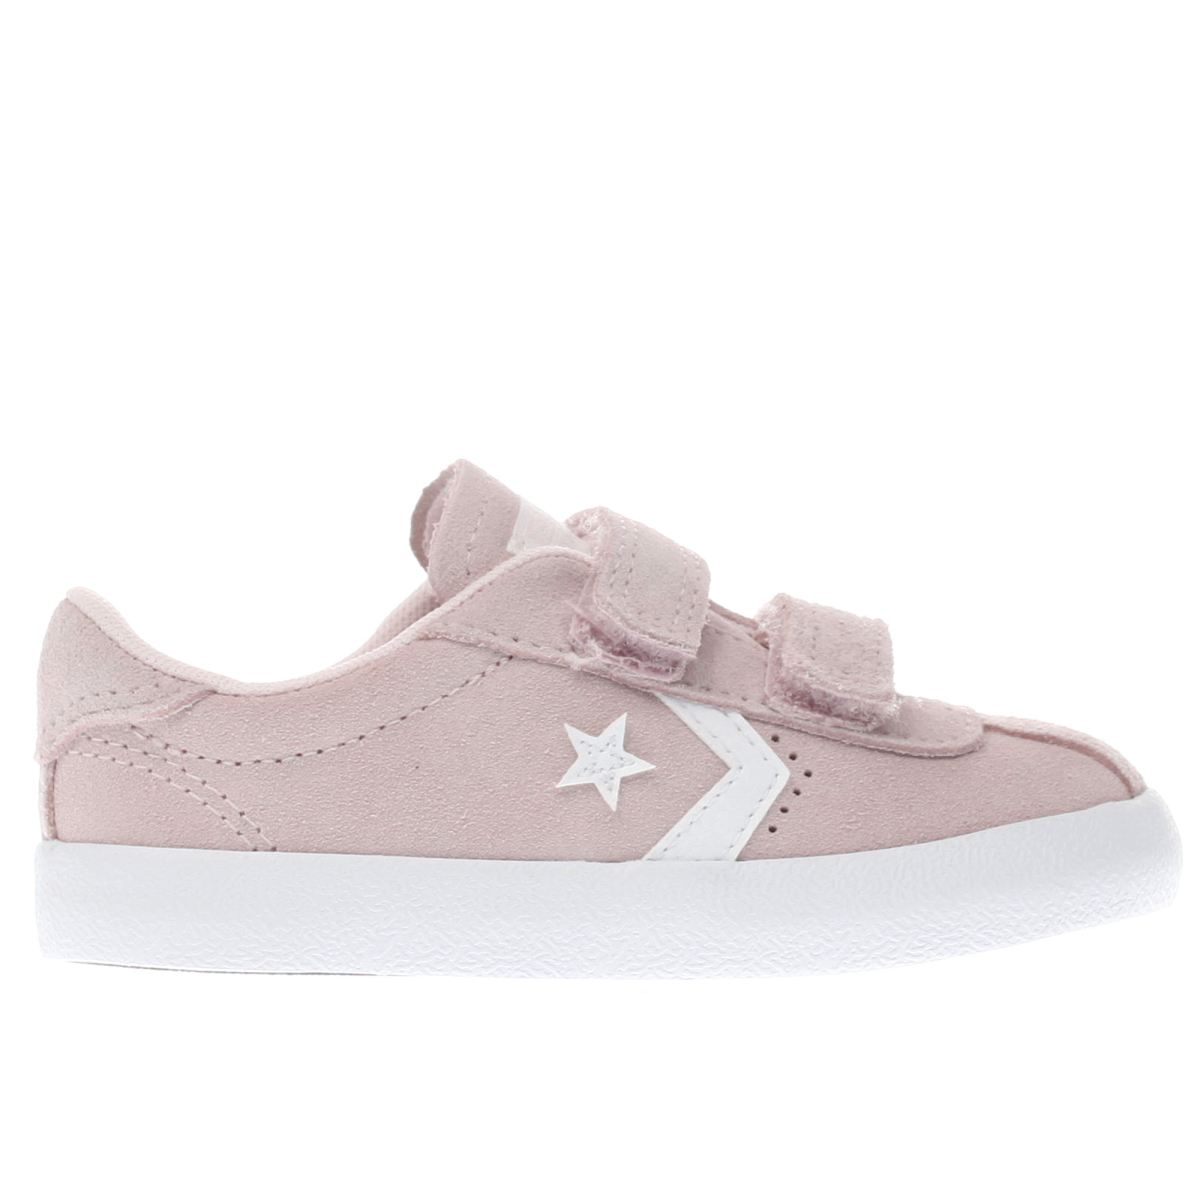 converse pale pink breakpoint 2v trainers